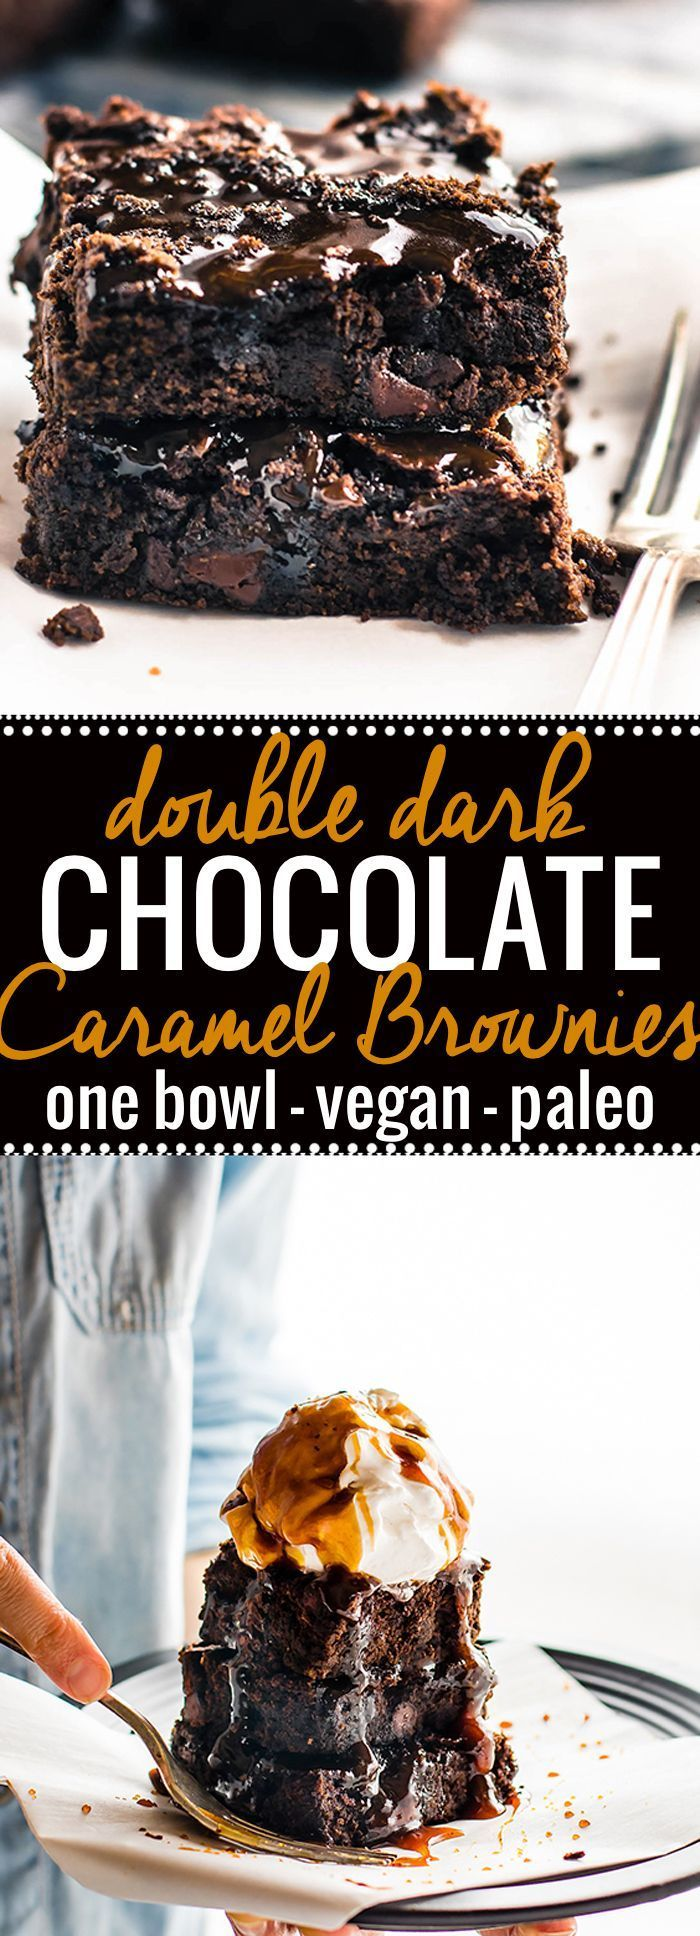 One bowl vegan desserts like these double dark chocolate salted caramel brownies are easy to make and paleo. These one bowl vegan brownies are made with two kinds of dark chocolate an topped with a dairy free salted caramel sauce. The perfect rich fudgy t